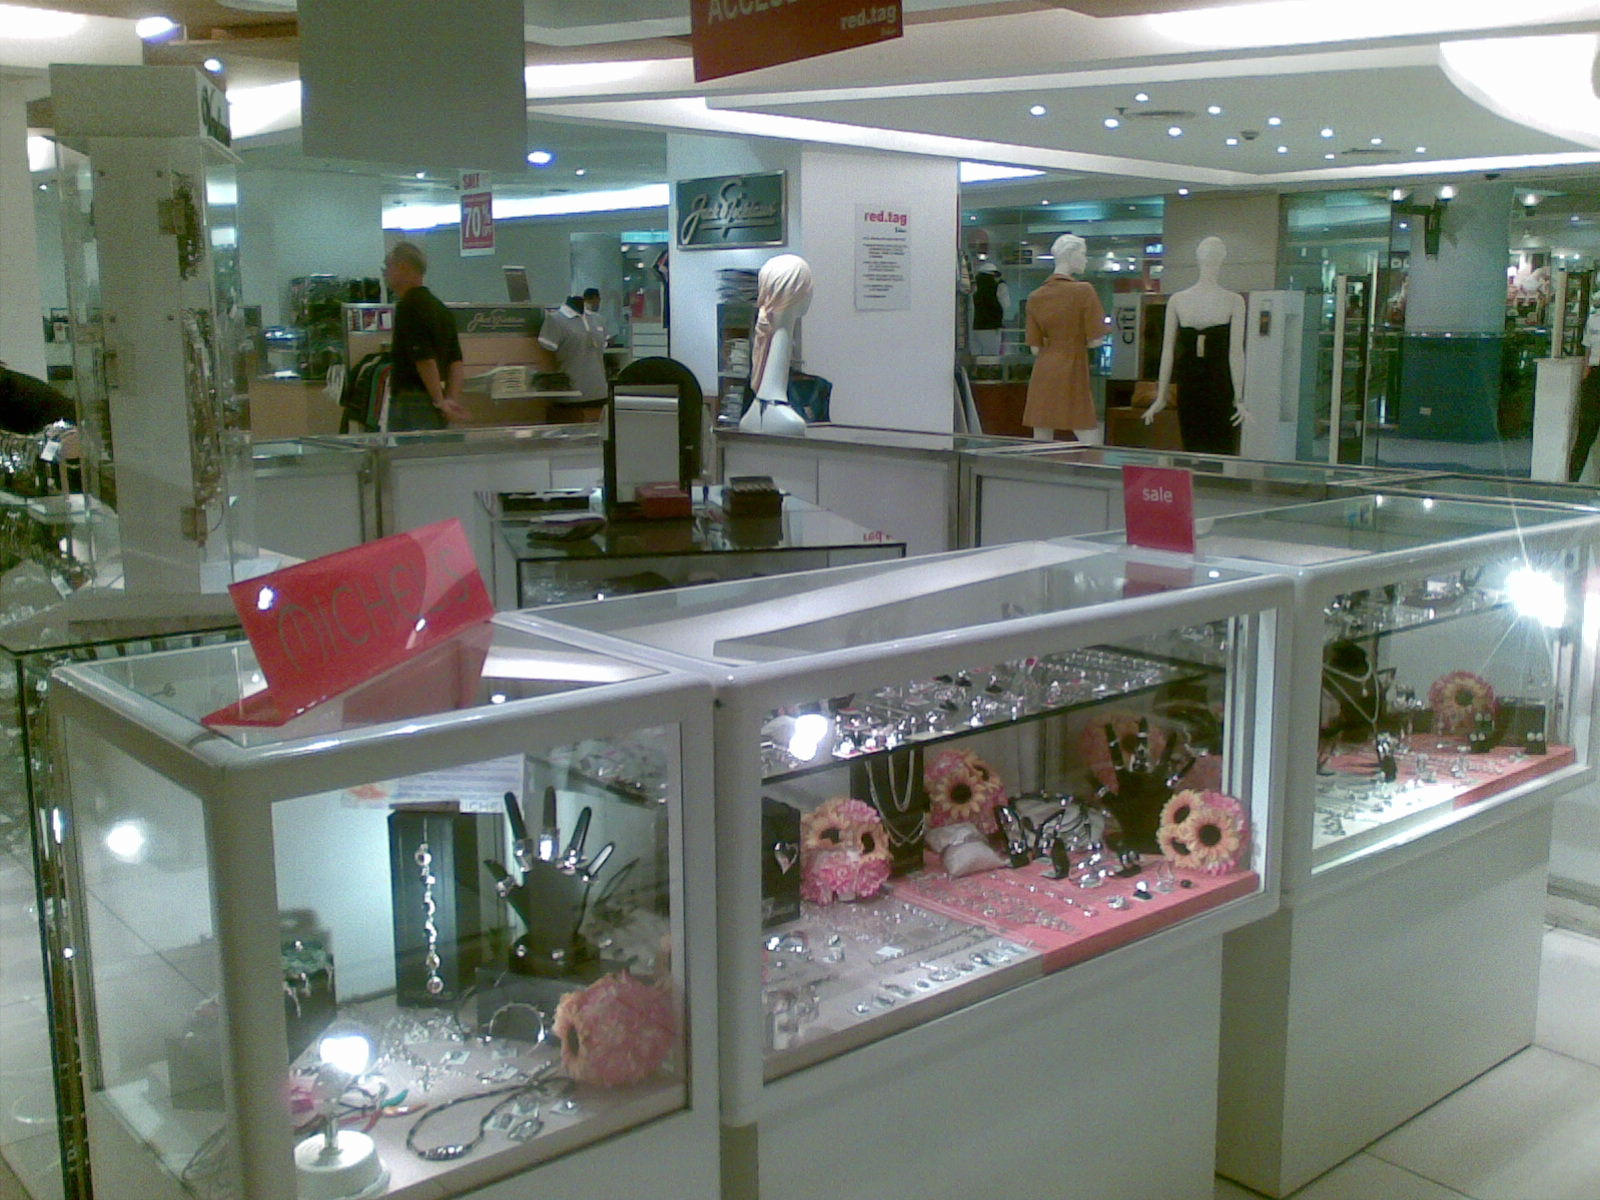 The Average Jane Rustan S Red Tag Store In Robinson S